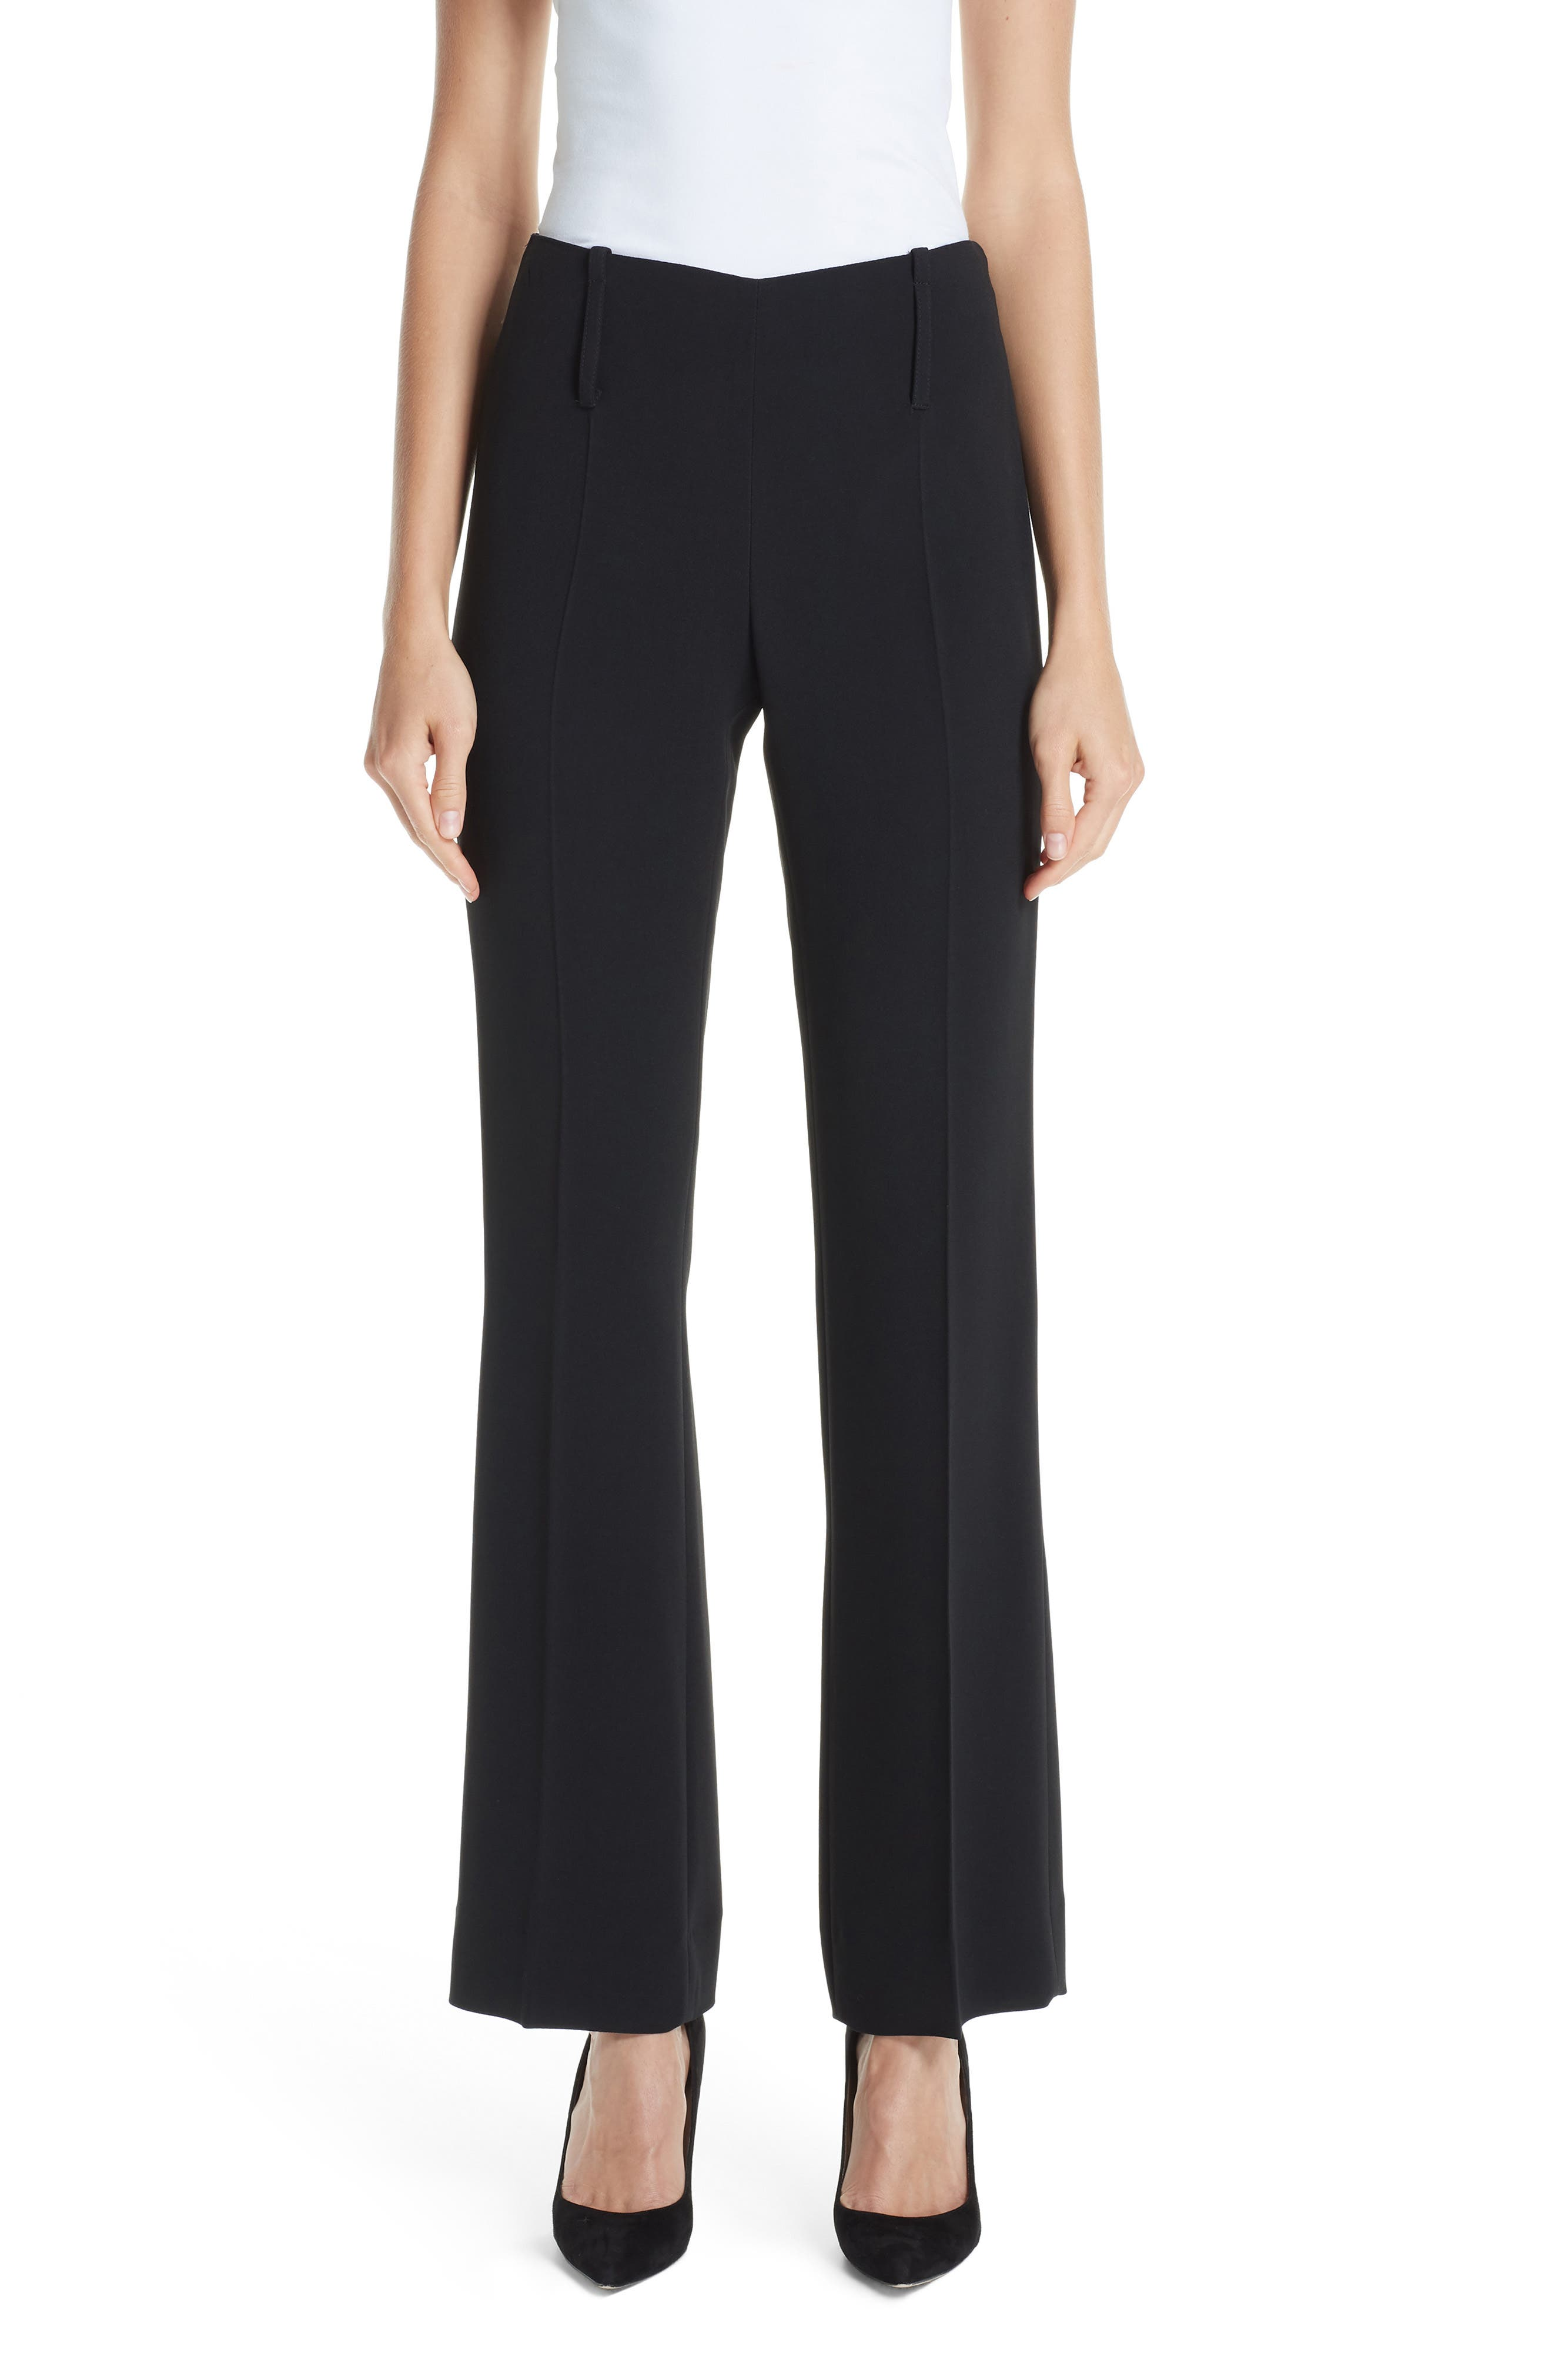 Emporio Armani Flare Pants, 8 IT - Black